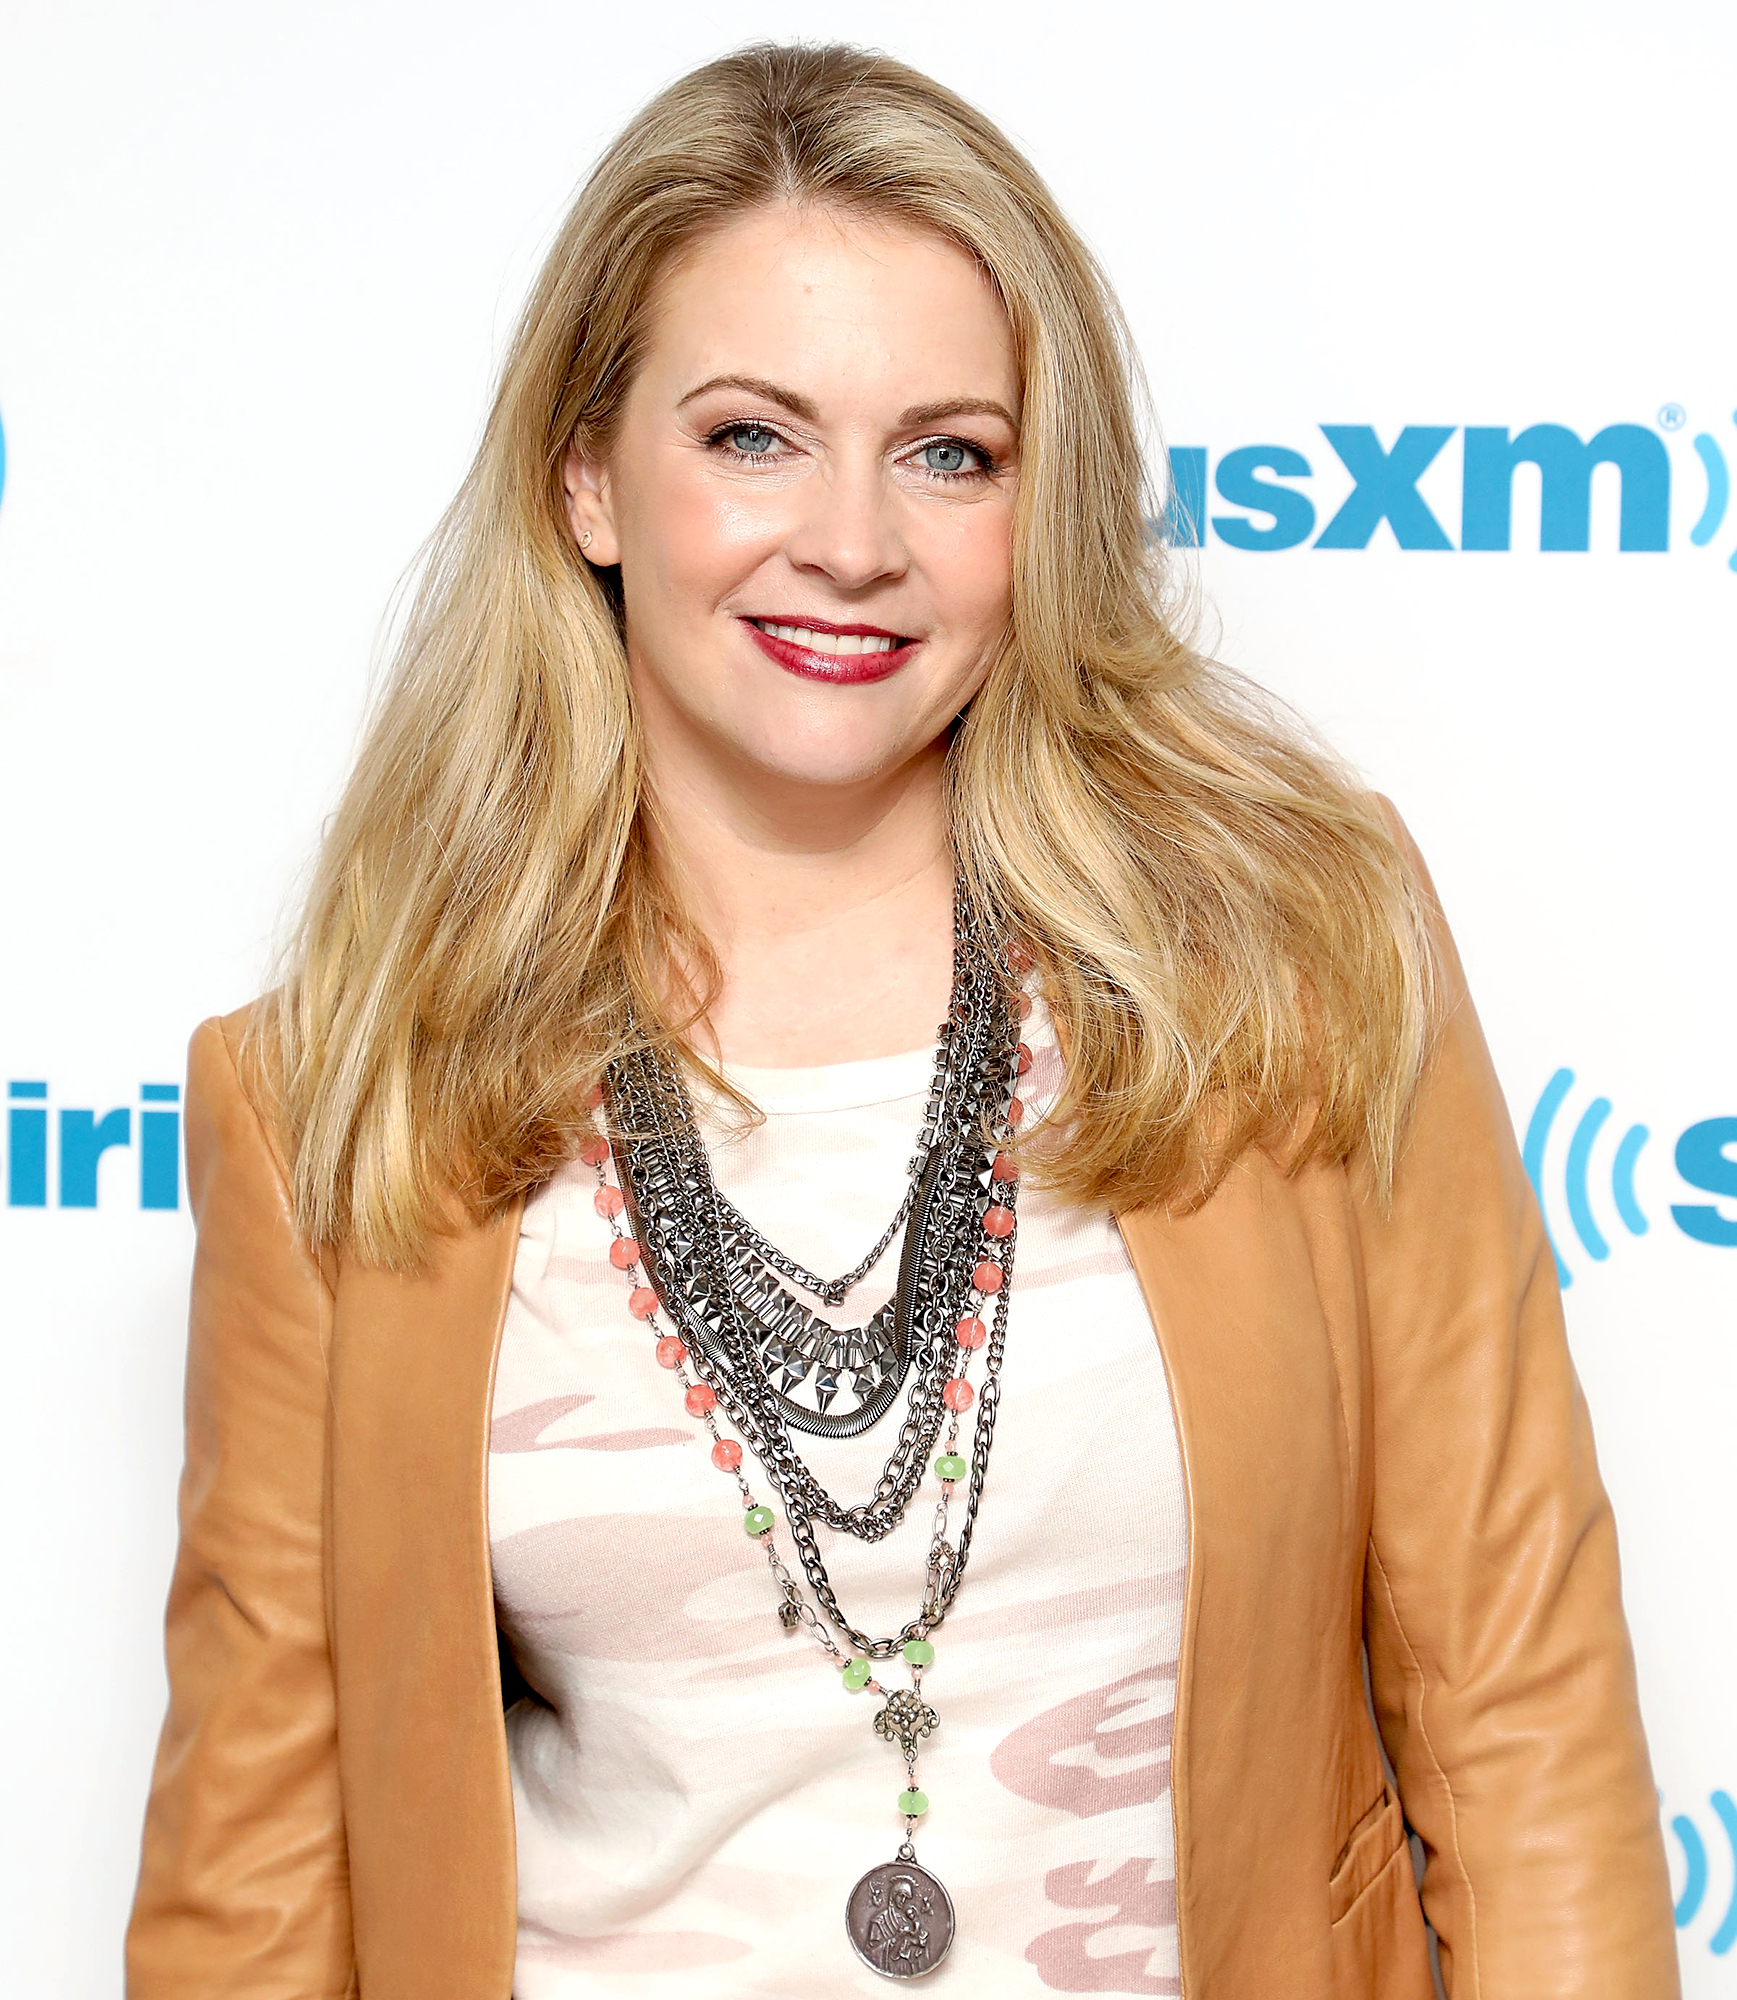 Melissa-Joan-Hart-Clarissa-Explains-It-All-Reboot-On-Hold